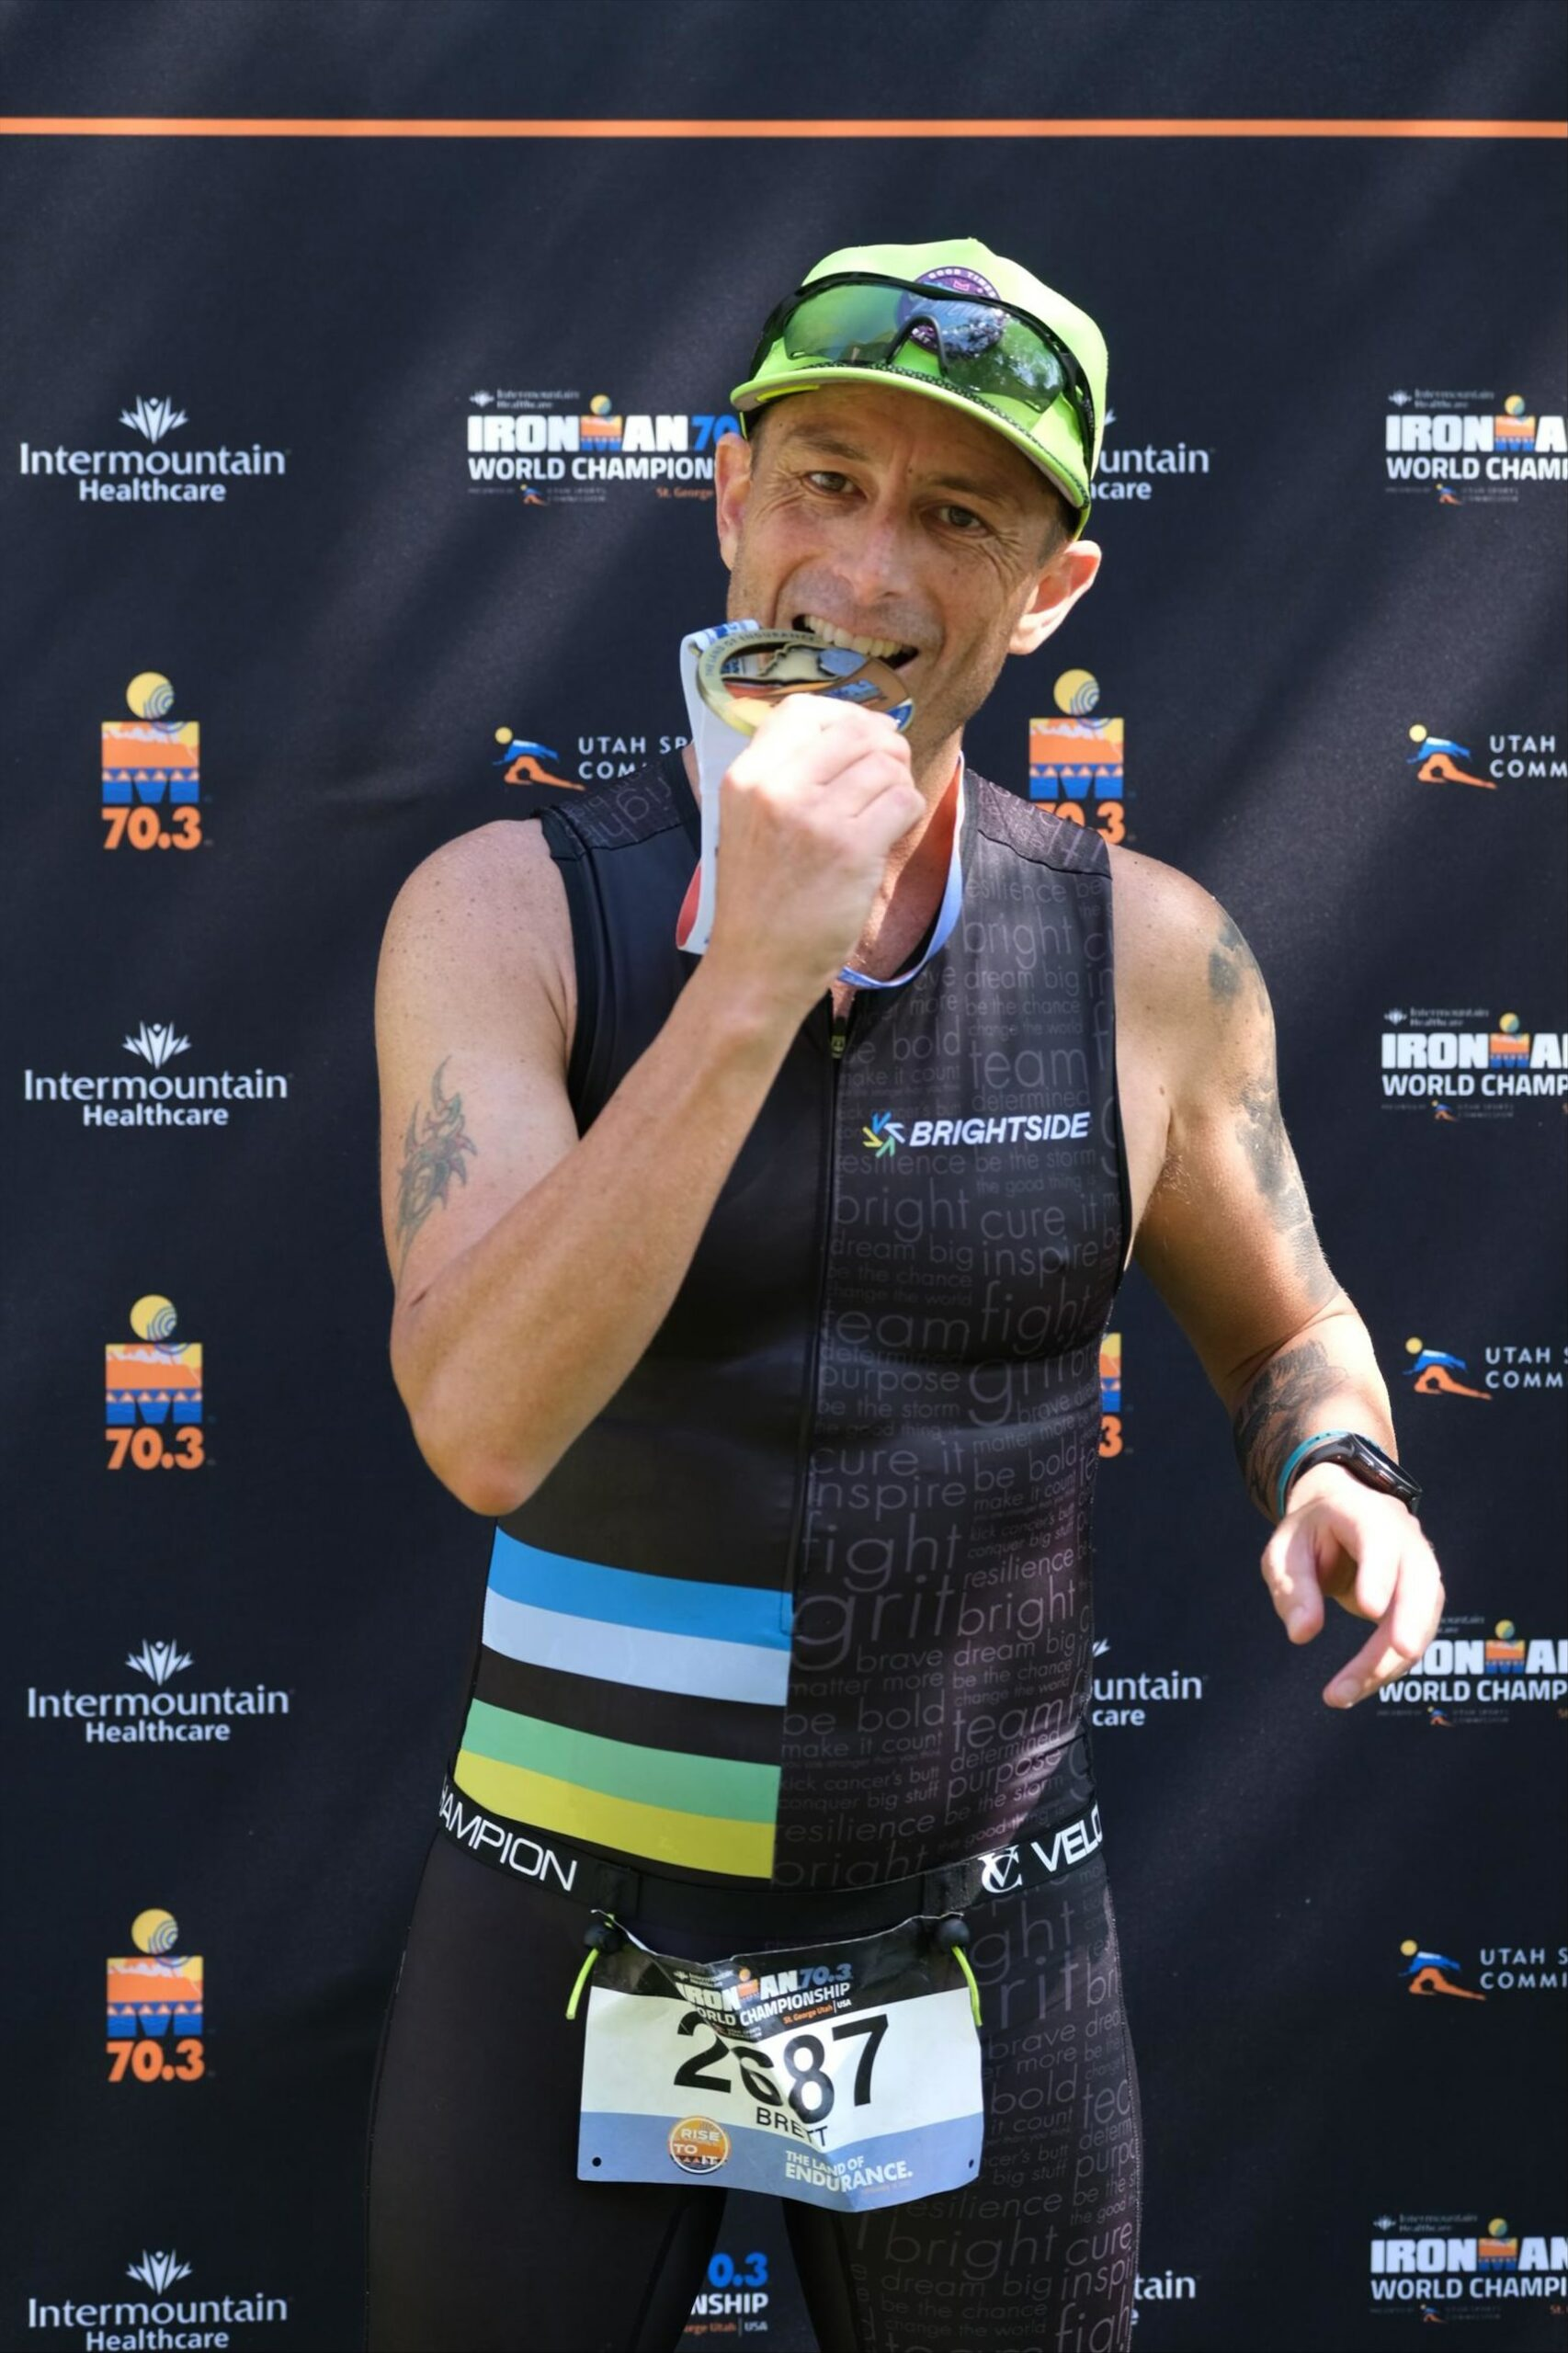 Brett Heyes, Credico's Director of National Accounts, bites his medal in front of an Ironman backdrop in his tri kit after completing a race.